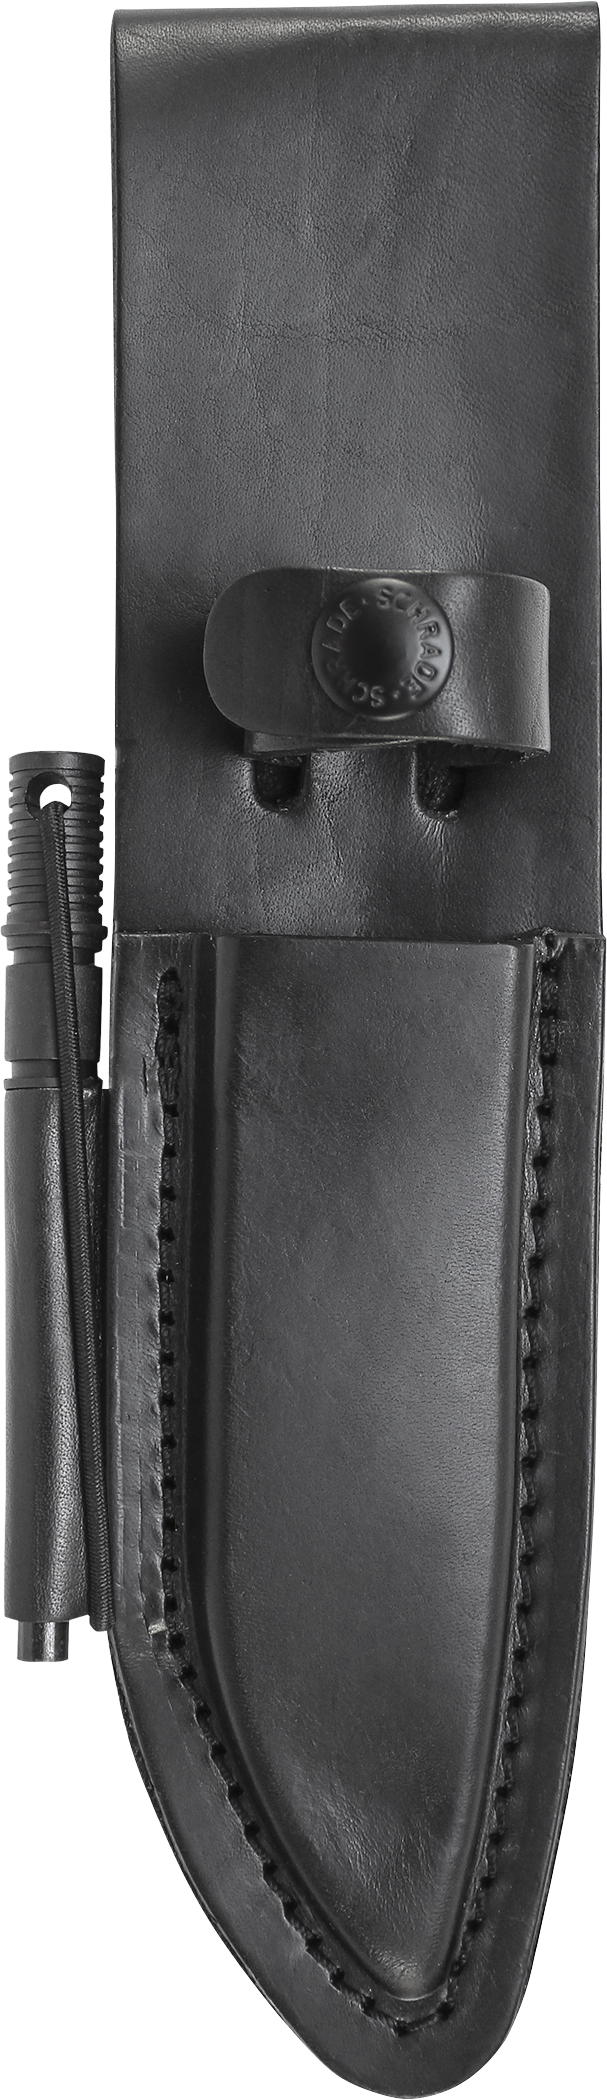 LS56L - Schrade Leather Sheath w/Ferro Rod For SCHF56L Model